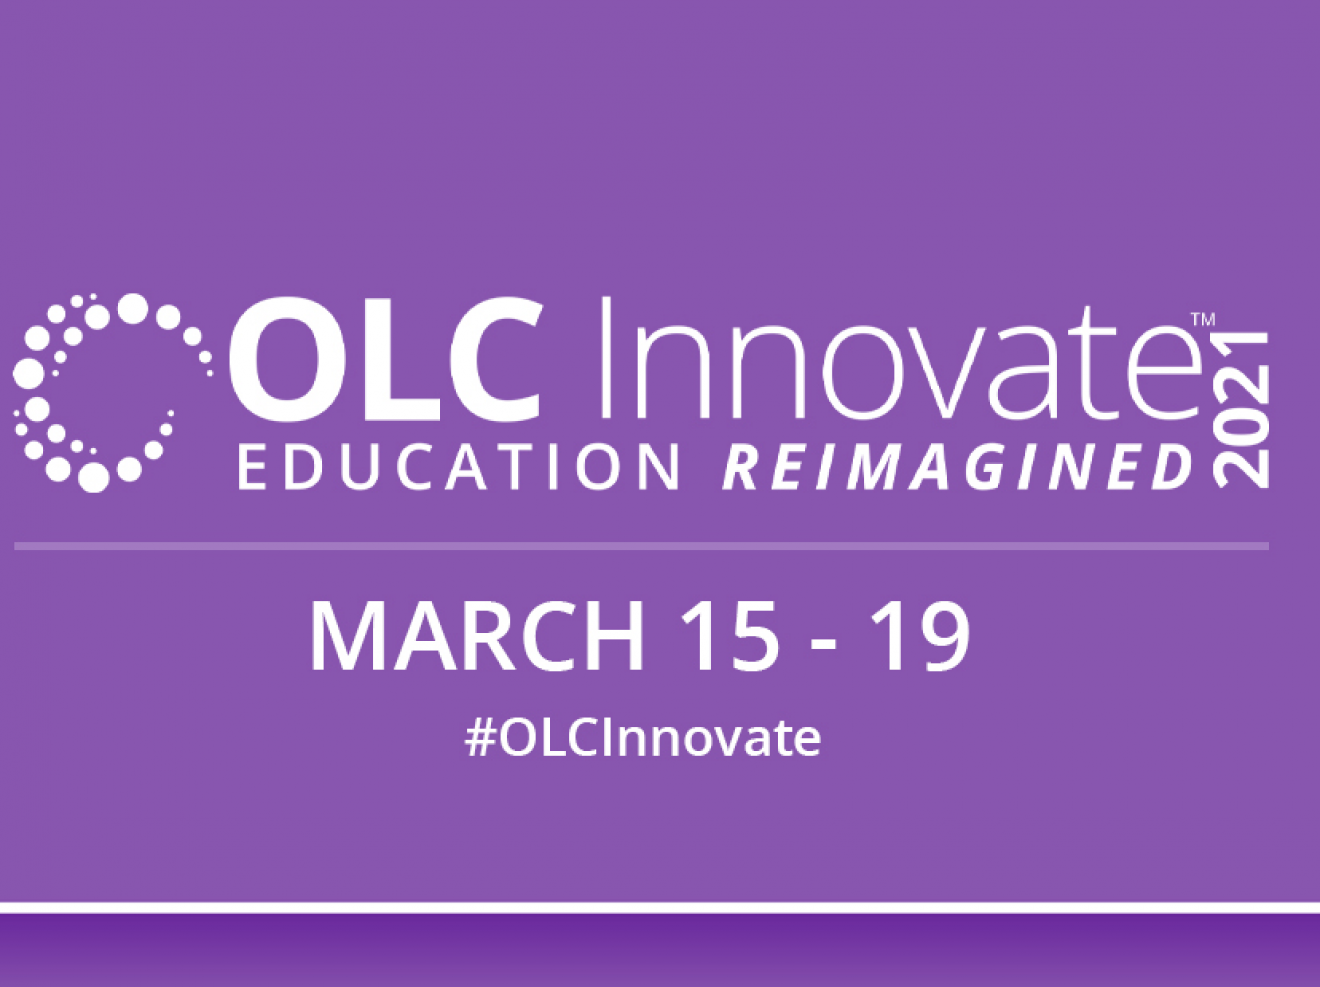 OLC Innovate 2021 - Online Learning Consortium